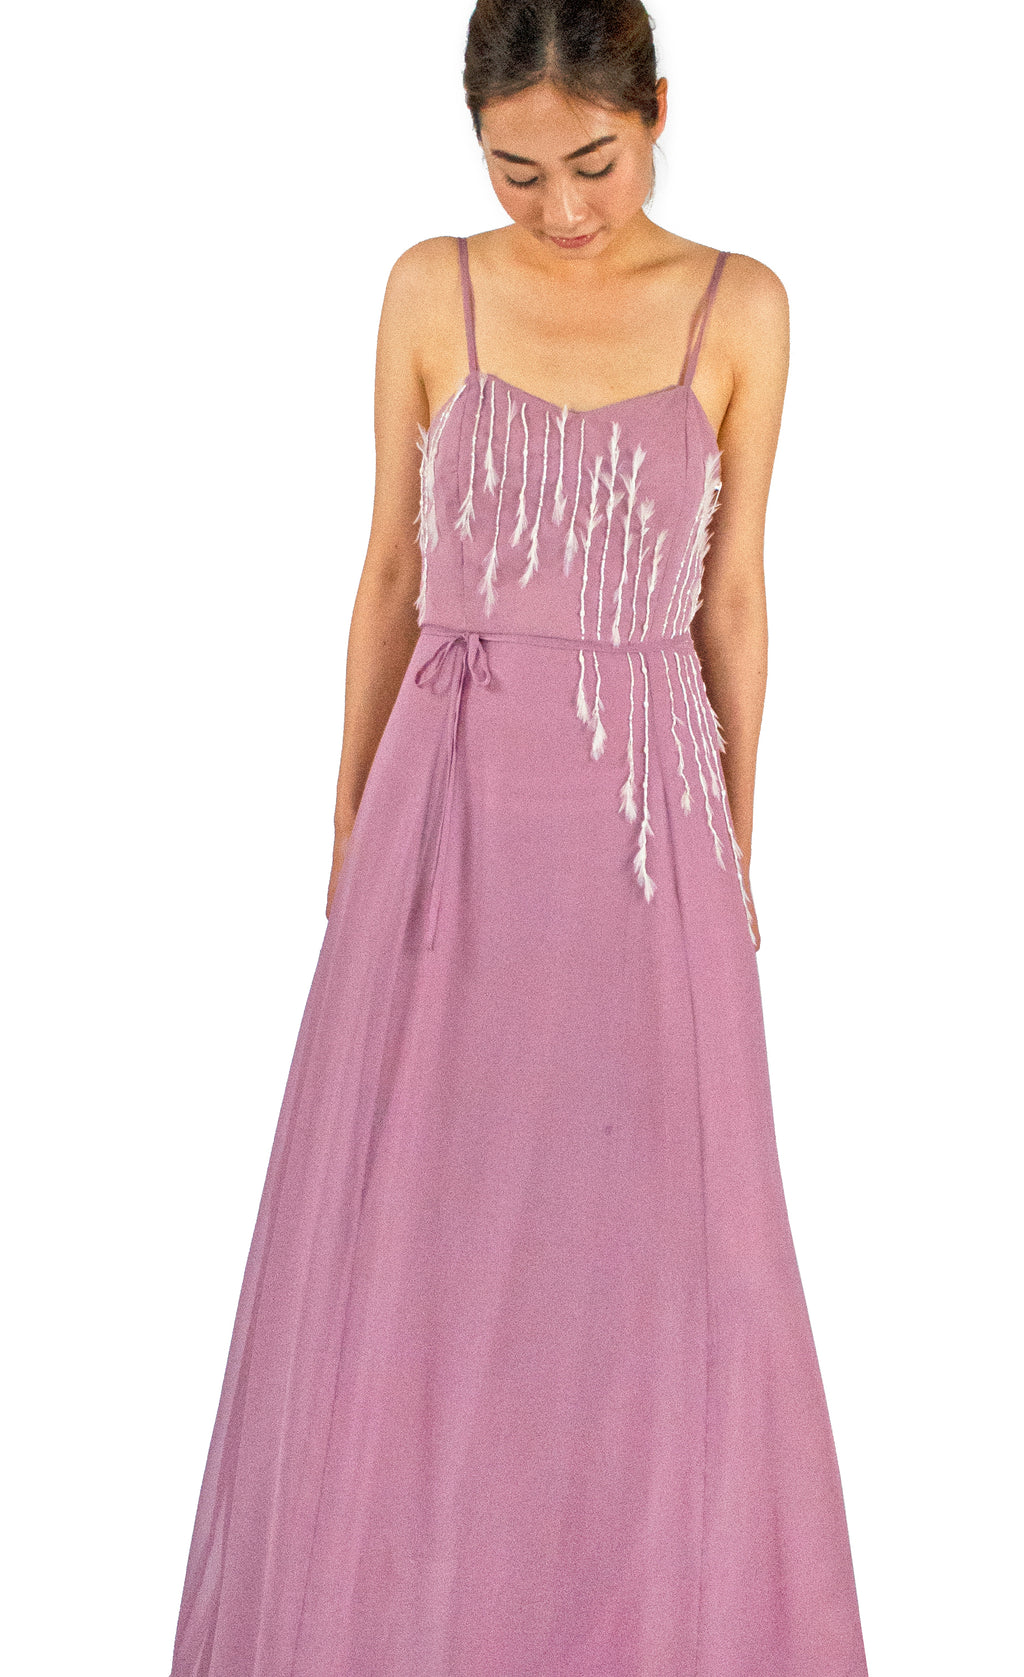 Feather & Glass-Embellished Lucie Dress - KxLNewYork